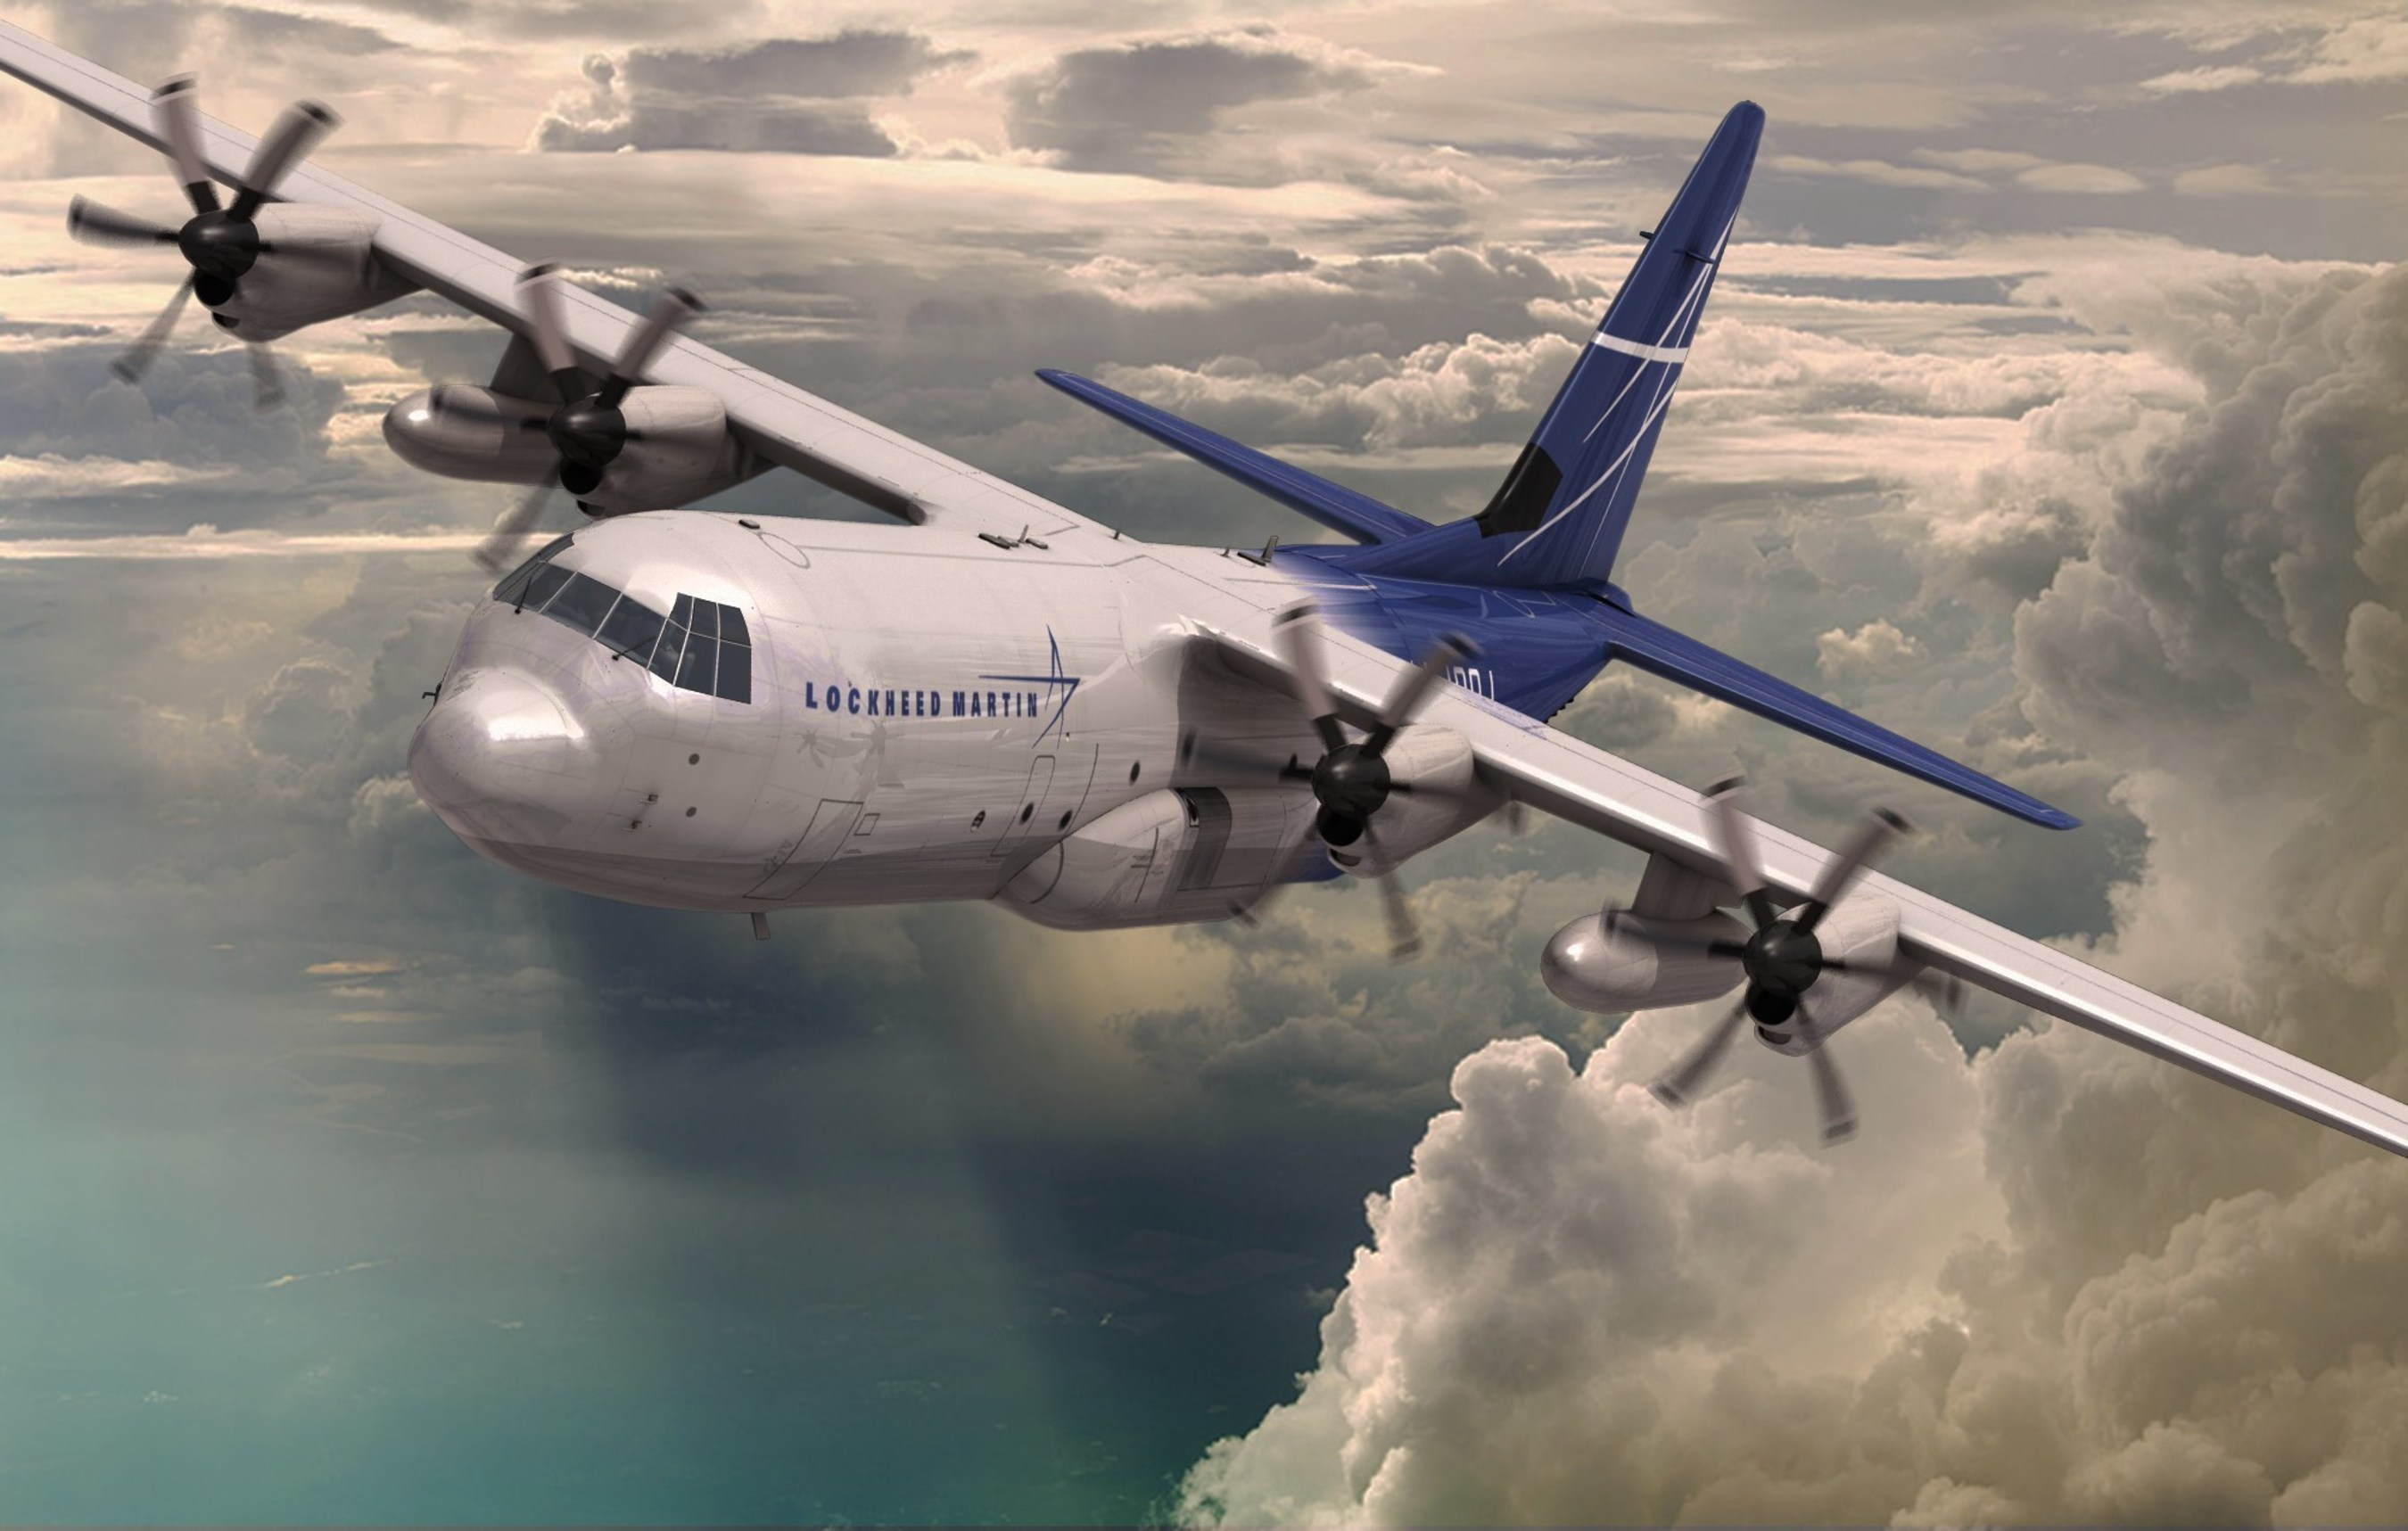 Lockheed Martin's LM-100J incorporates technological developments and improvements over the existing L-100s that result from years of C-130J operational experience, including more than 1.3 million flight hours by operators in 16 nations. (Rendering by Marco Riccio)